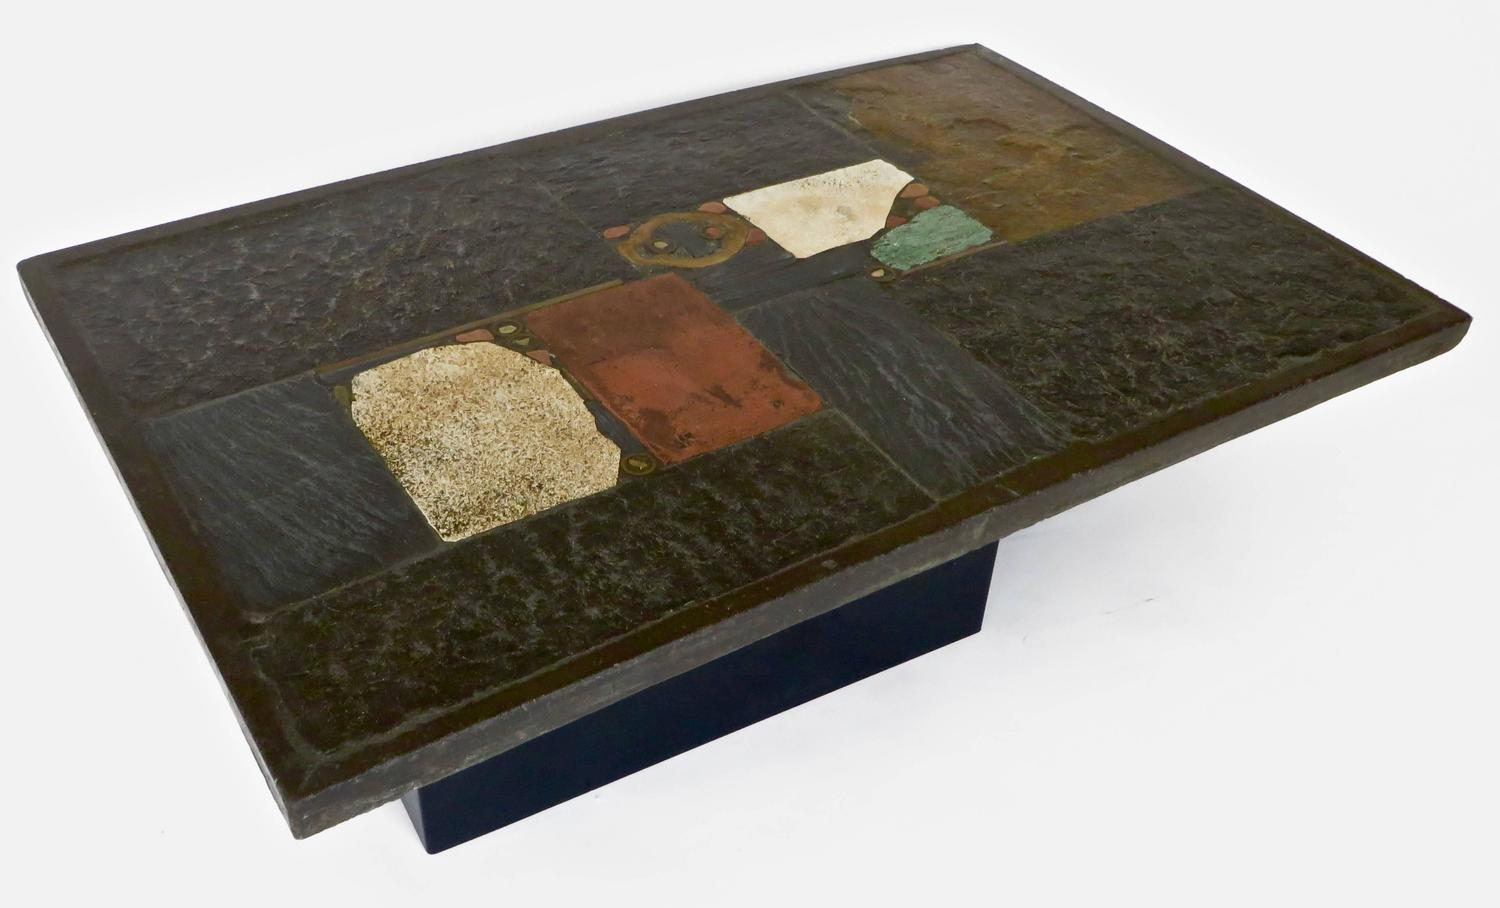 Mosaic Stone And Slate Coffee Table By Dutch Artist Paul Kingma 1974 At 1stdibs